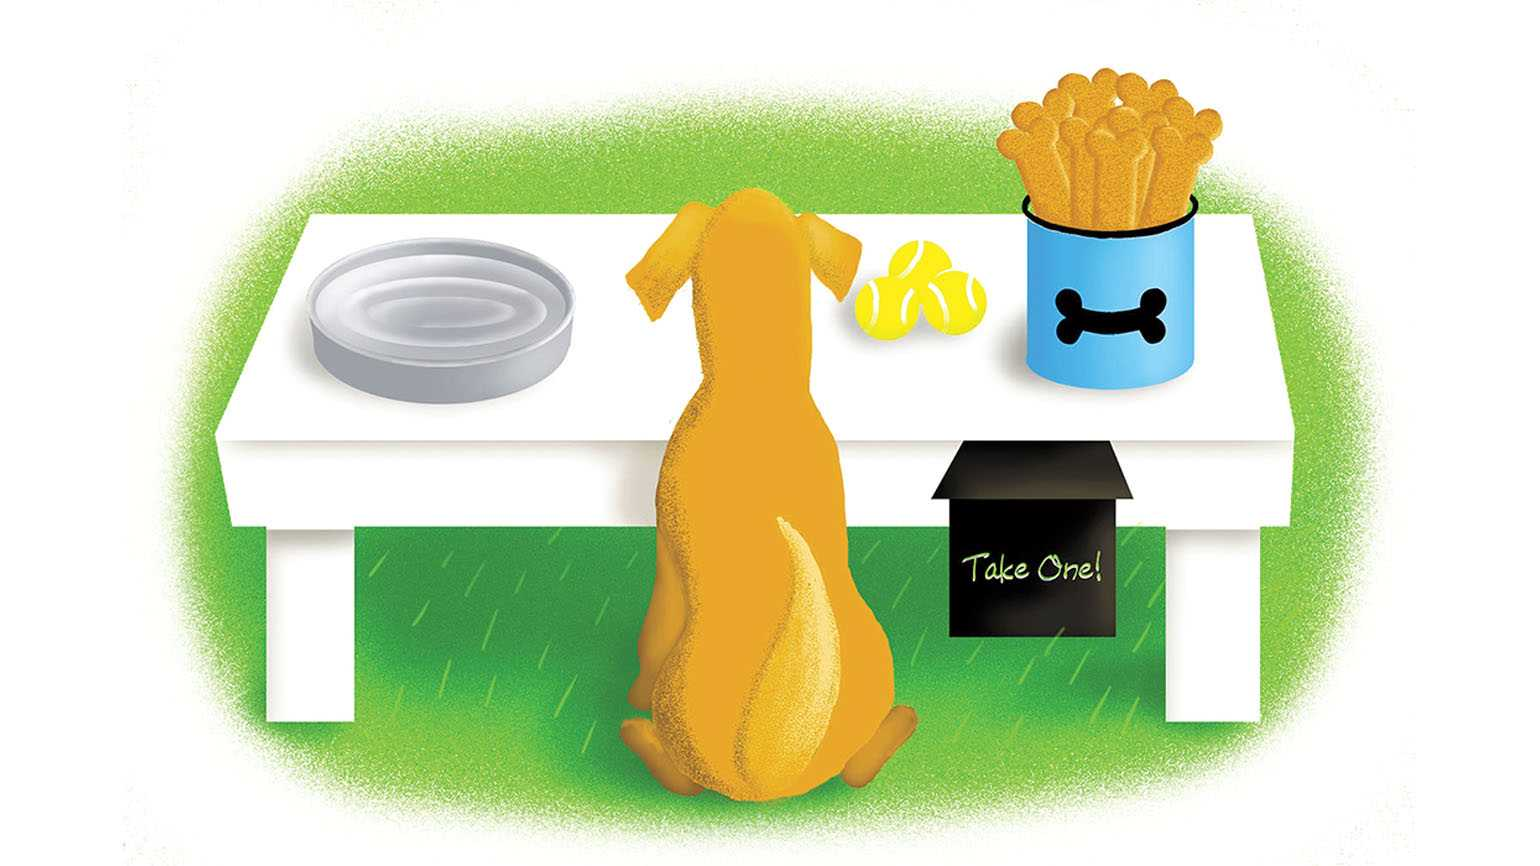 Illustration of a dog taking a break at the pit stop; Illustration by Coco Masuda